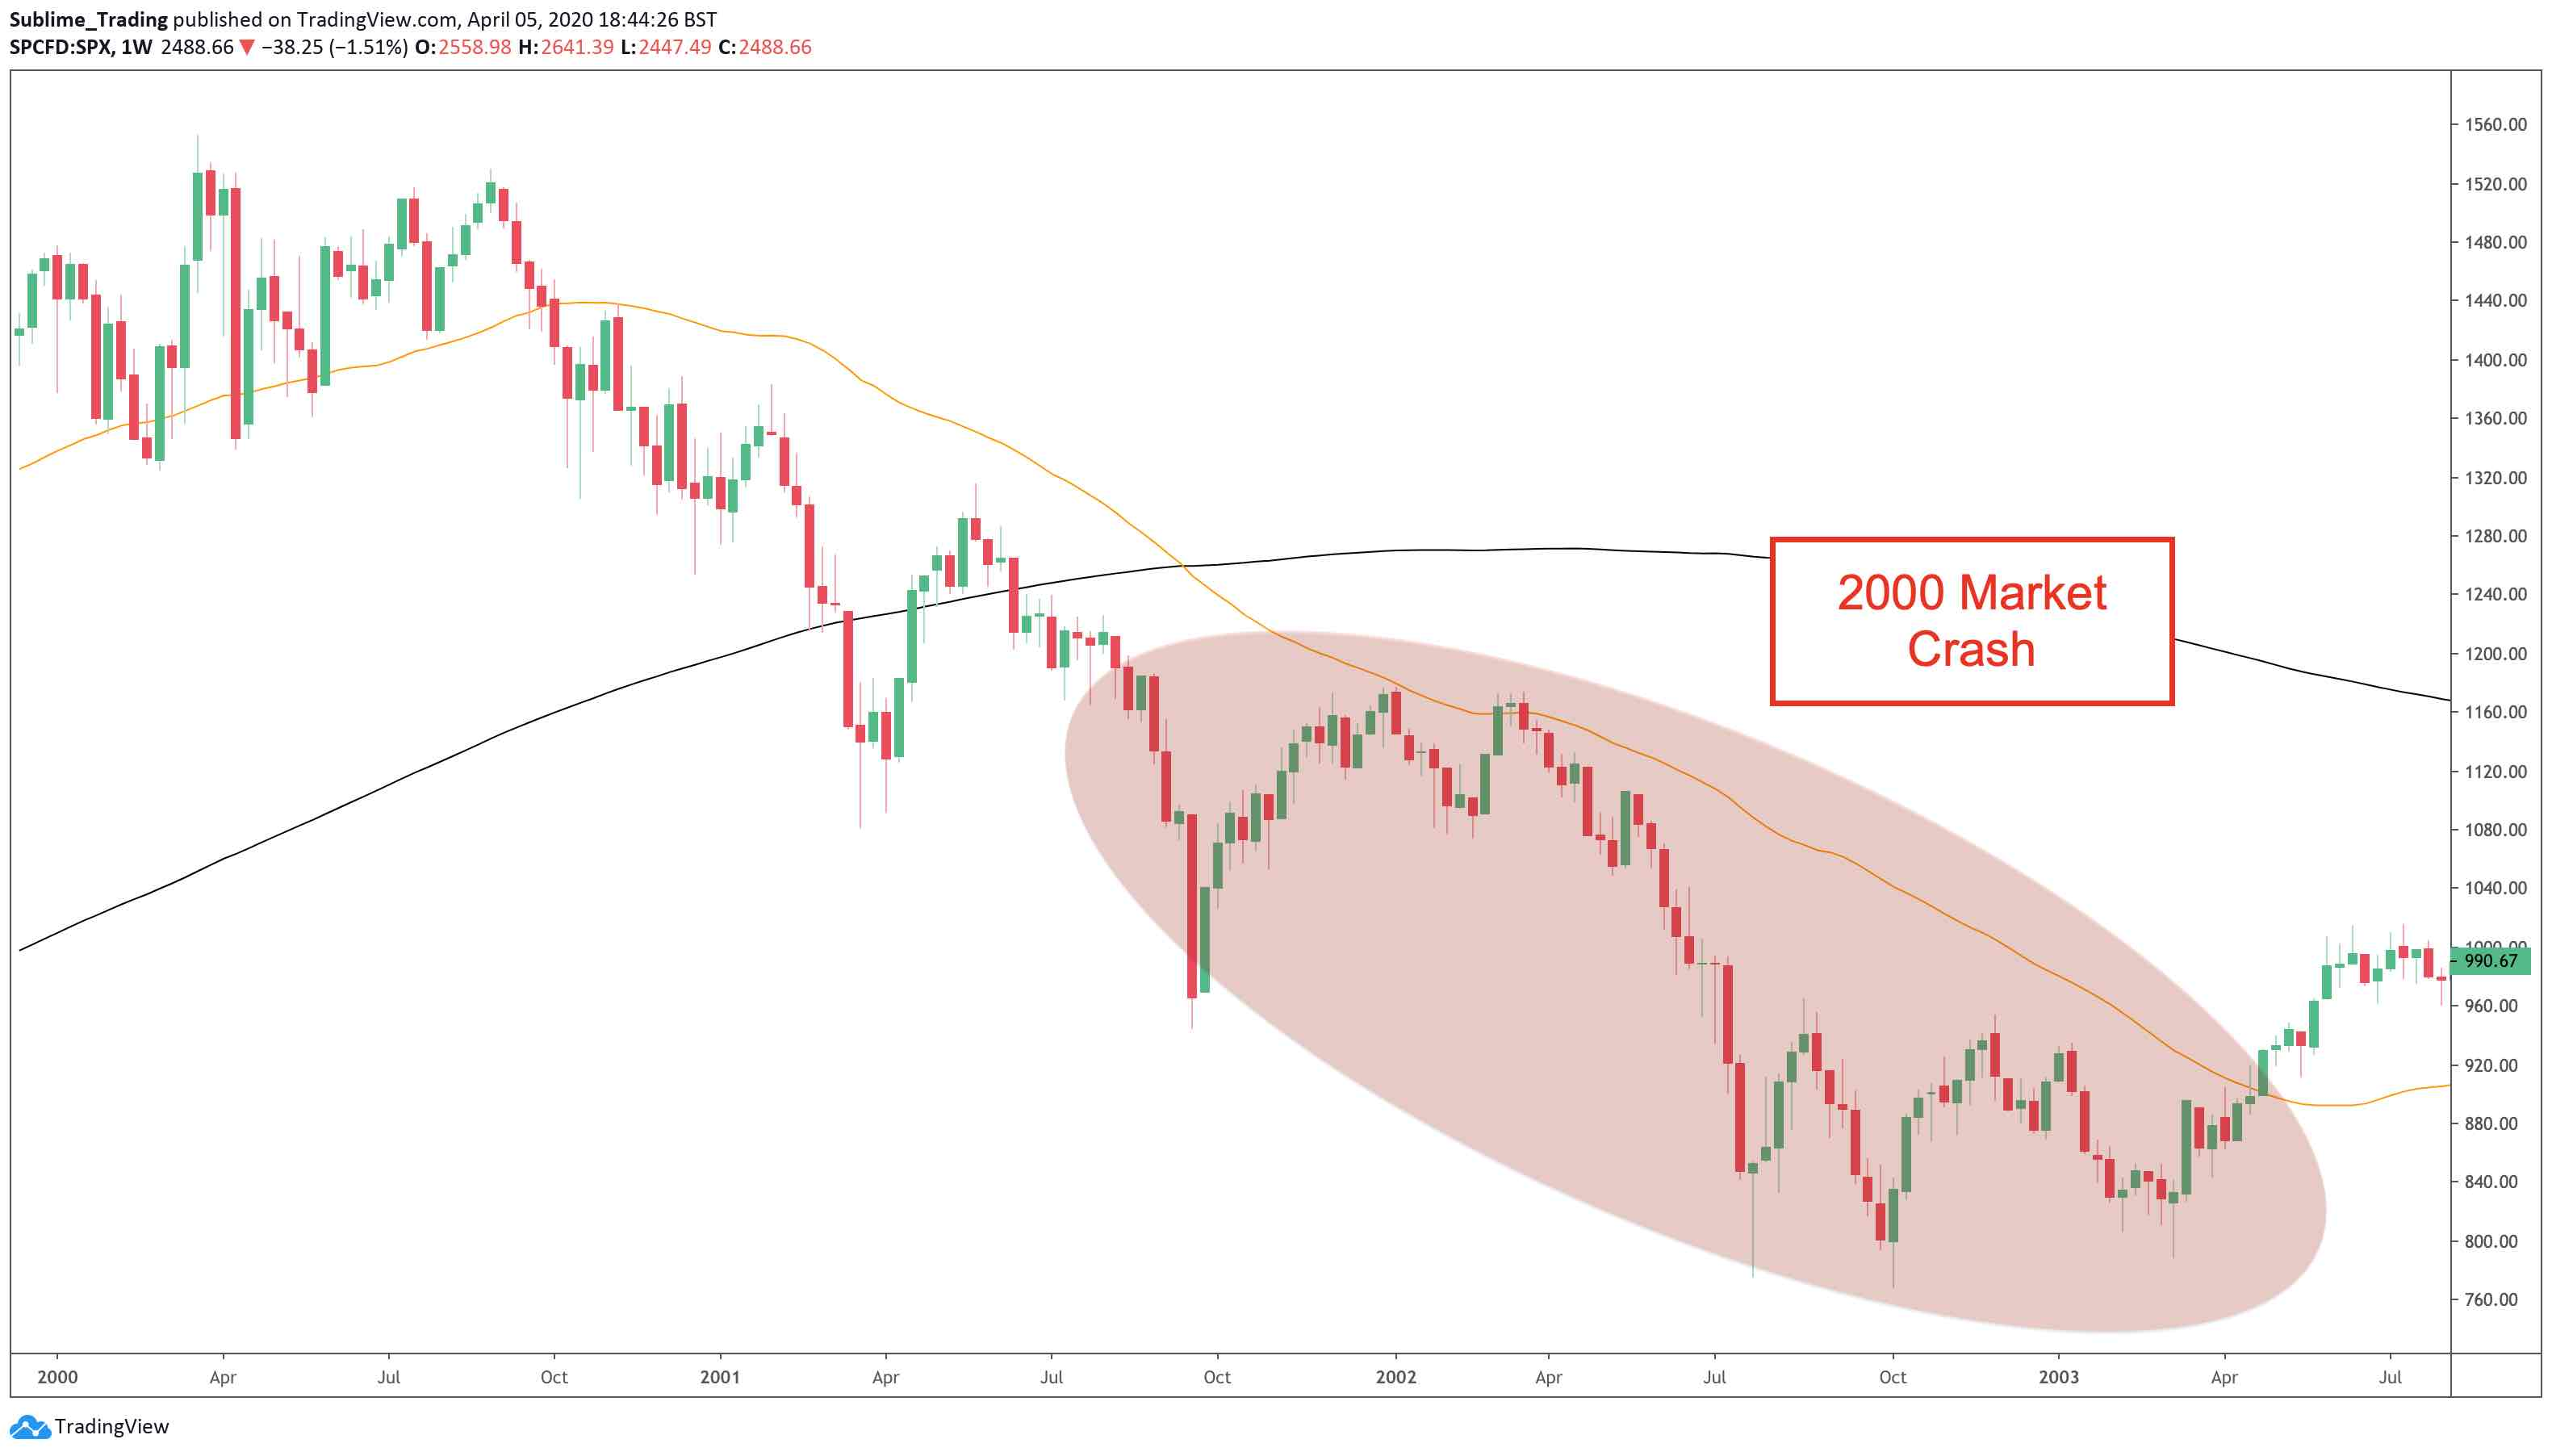 The 2000 market crash on the weekly timeframe